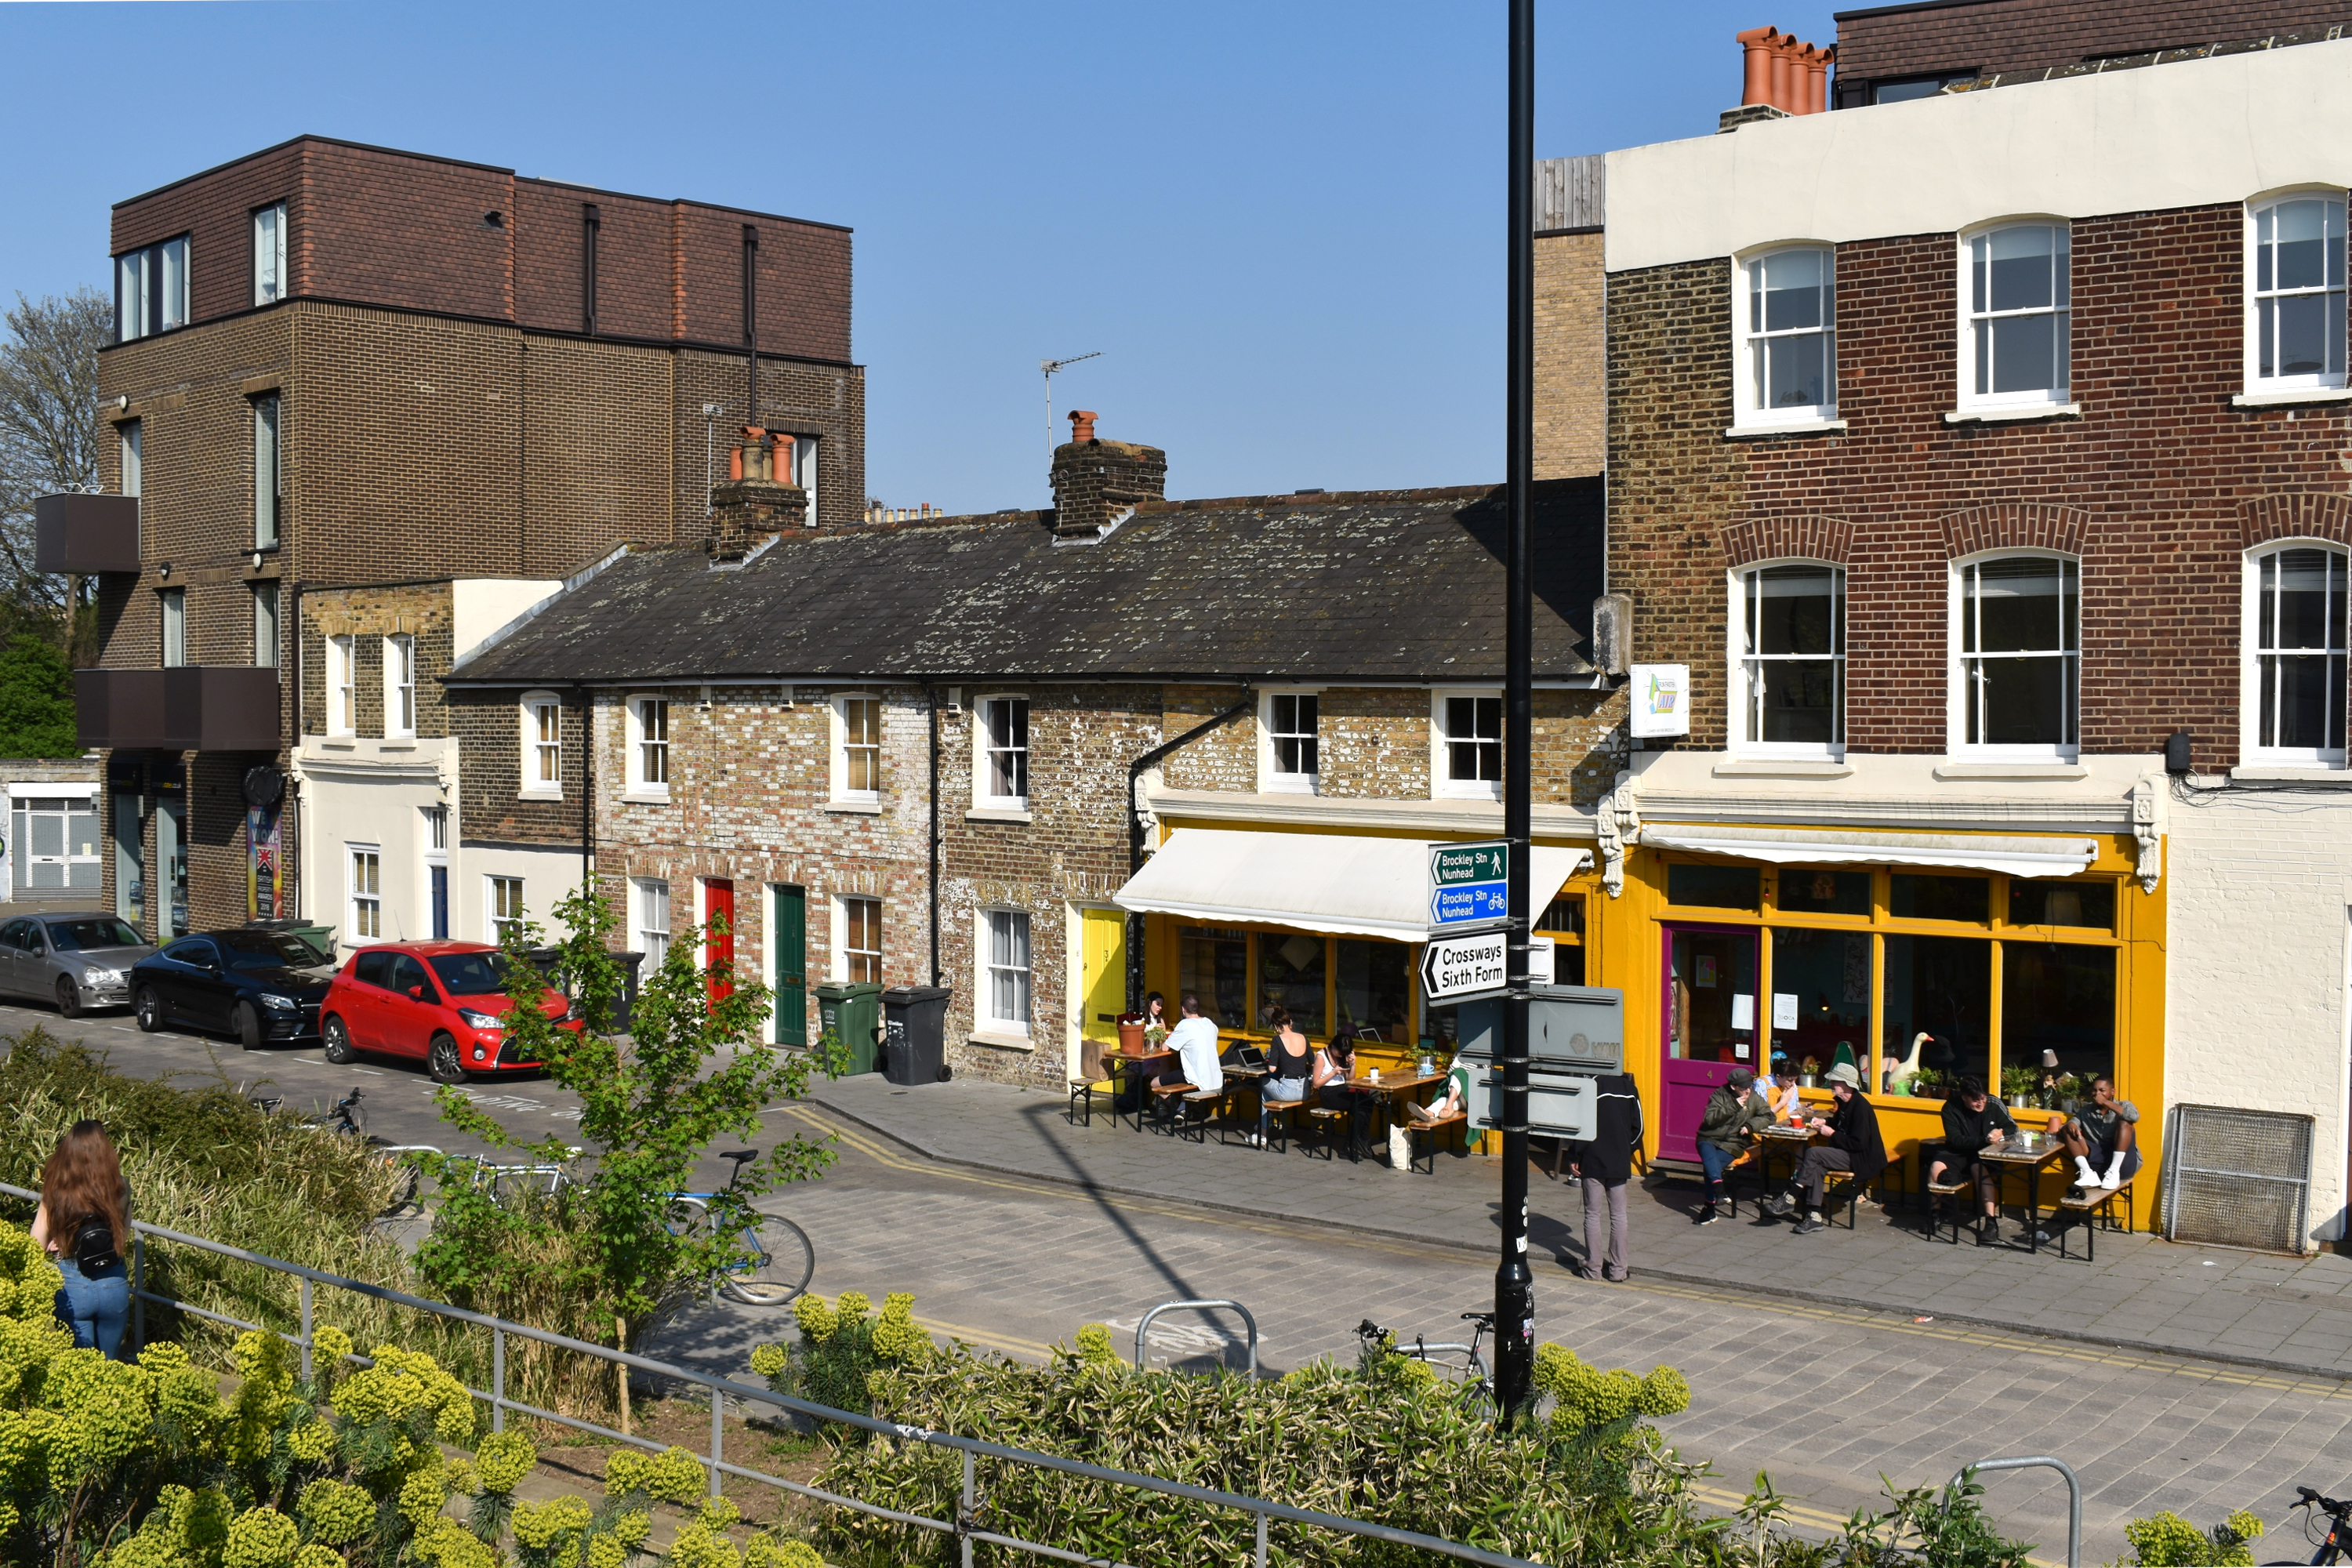 row of coffee shops with people sitting outside in sun